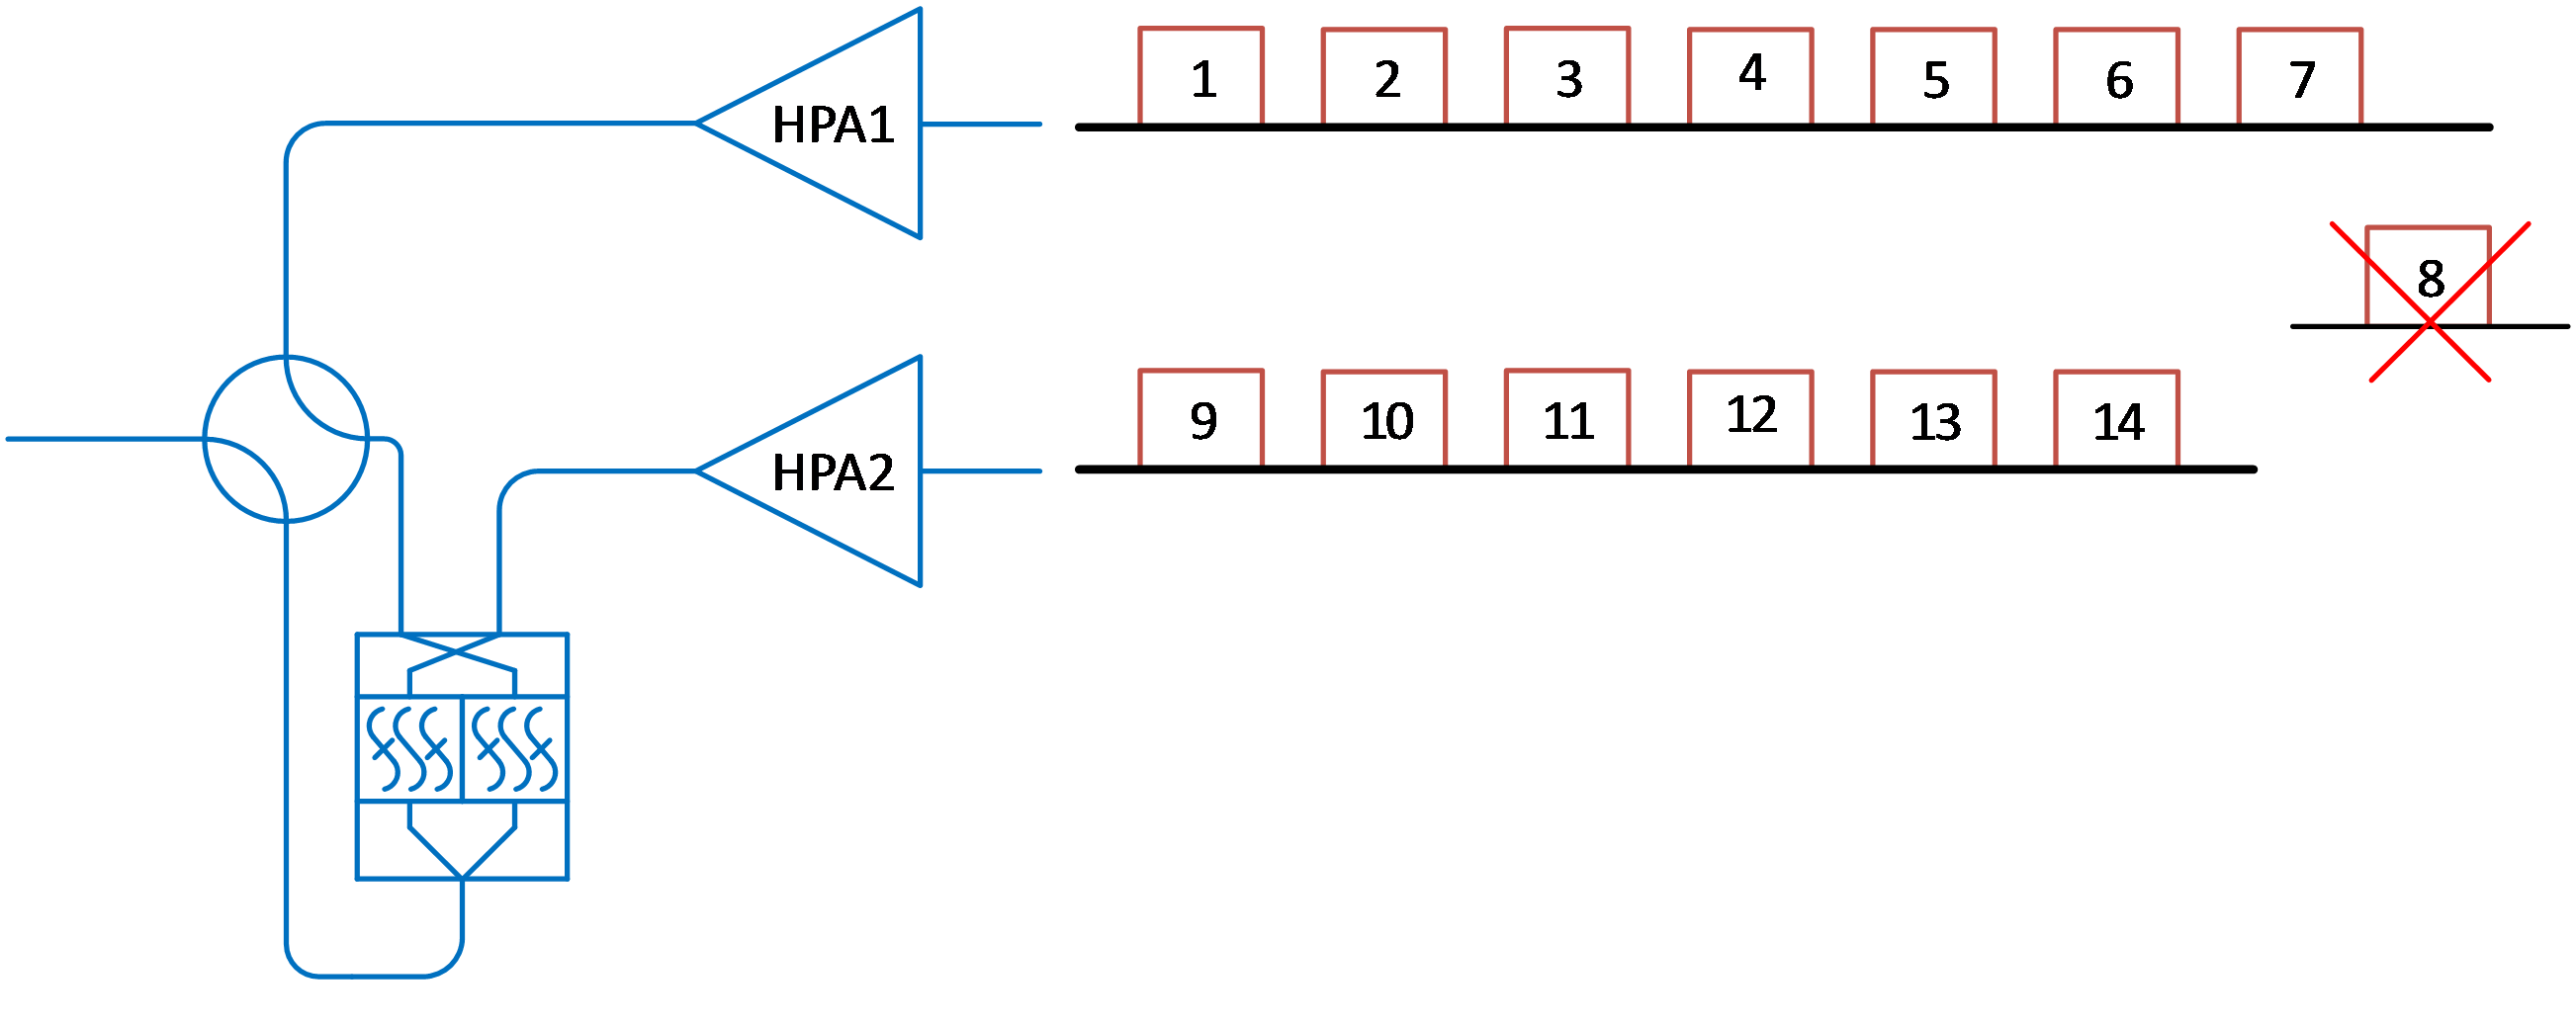 newly designed wideband diplexing configuration